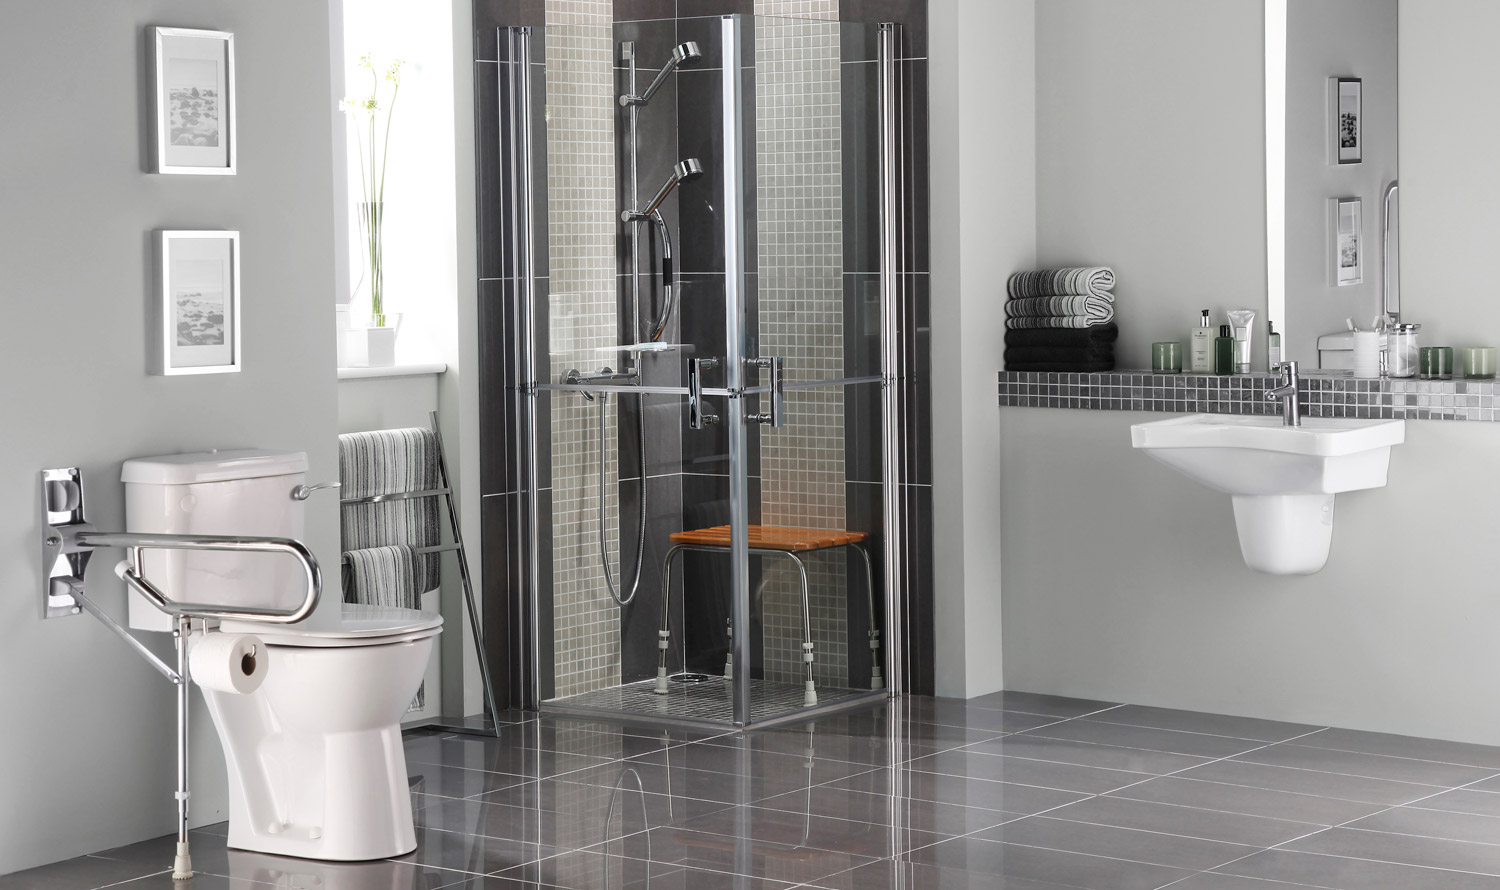 Bathroom Remodels For Aging Wheelchair Accessible In NorthCentral IL - Bathroom for wheelchair user